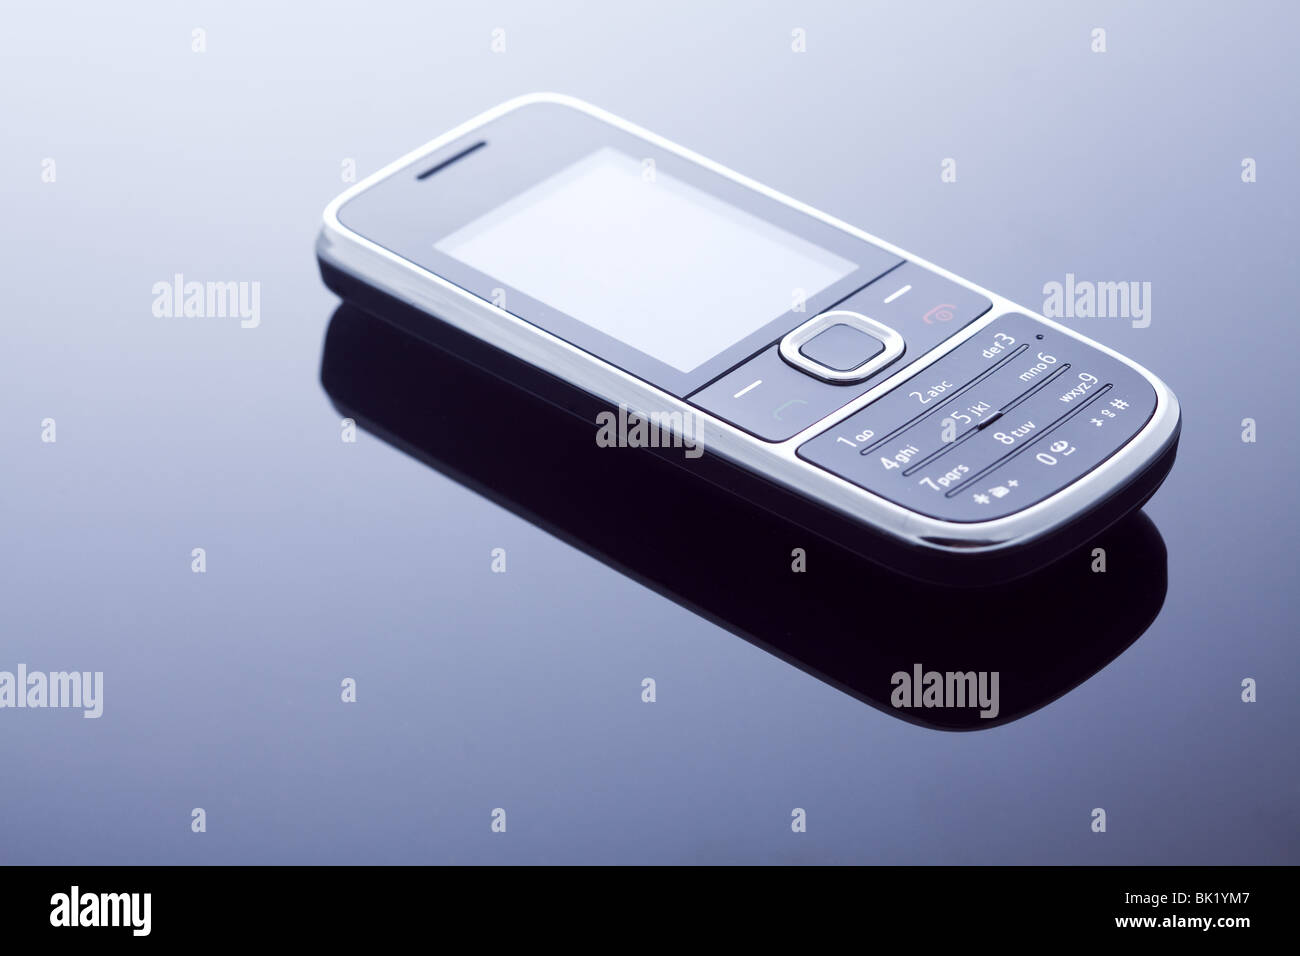 Obsolete outdated old model mobile phone with keypad - Stock Image